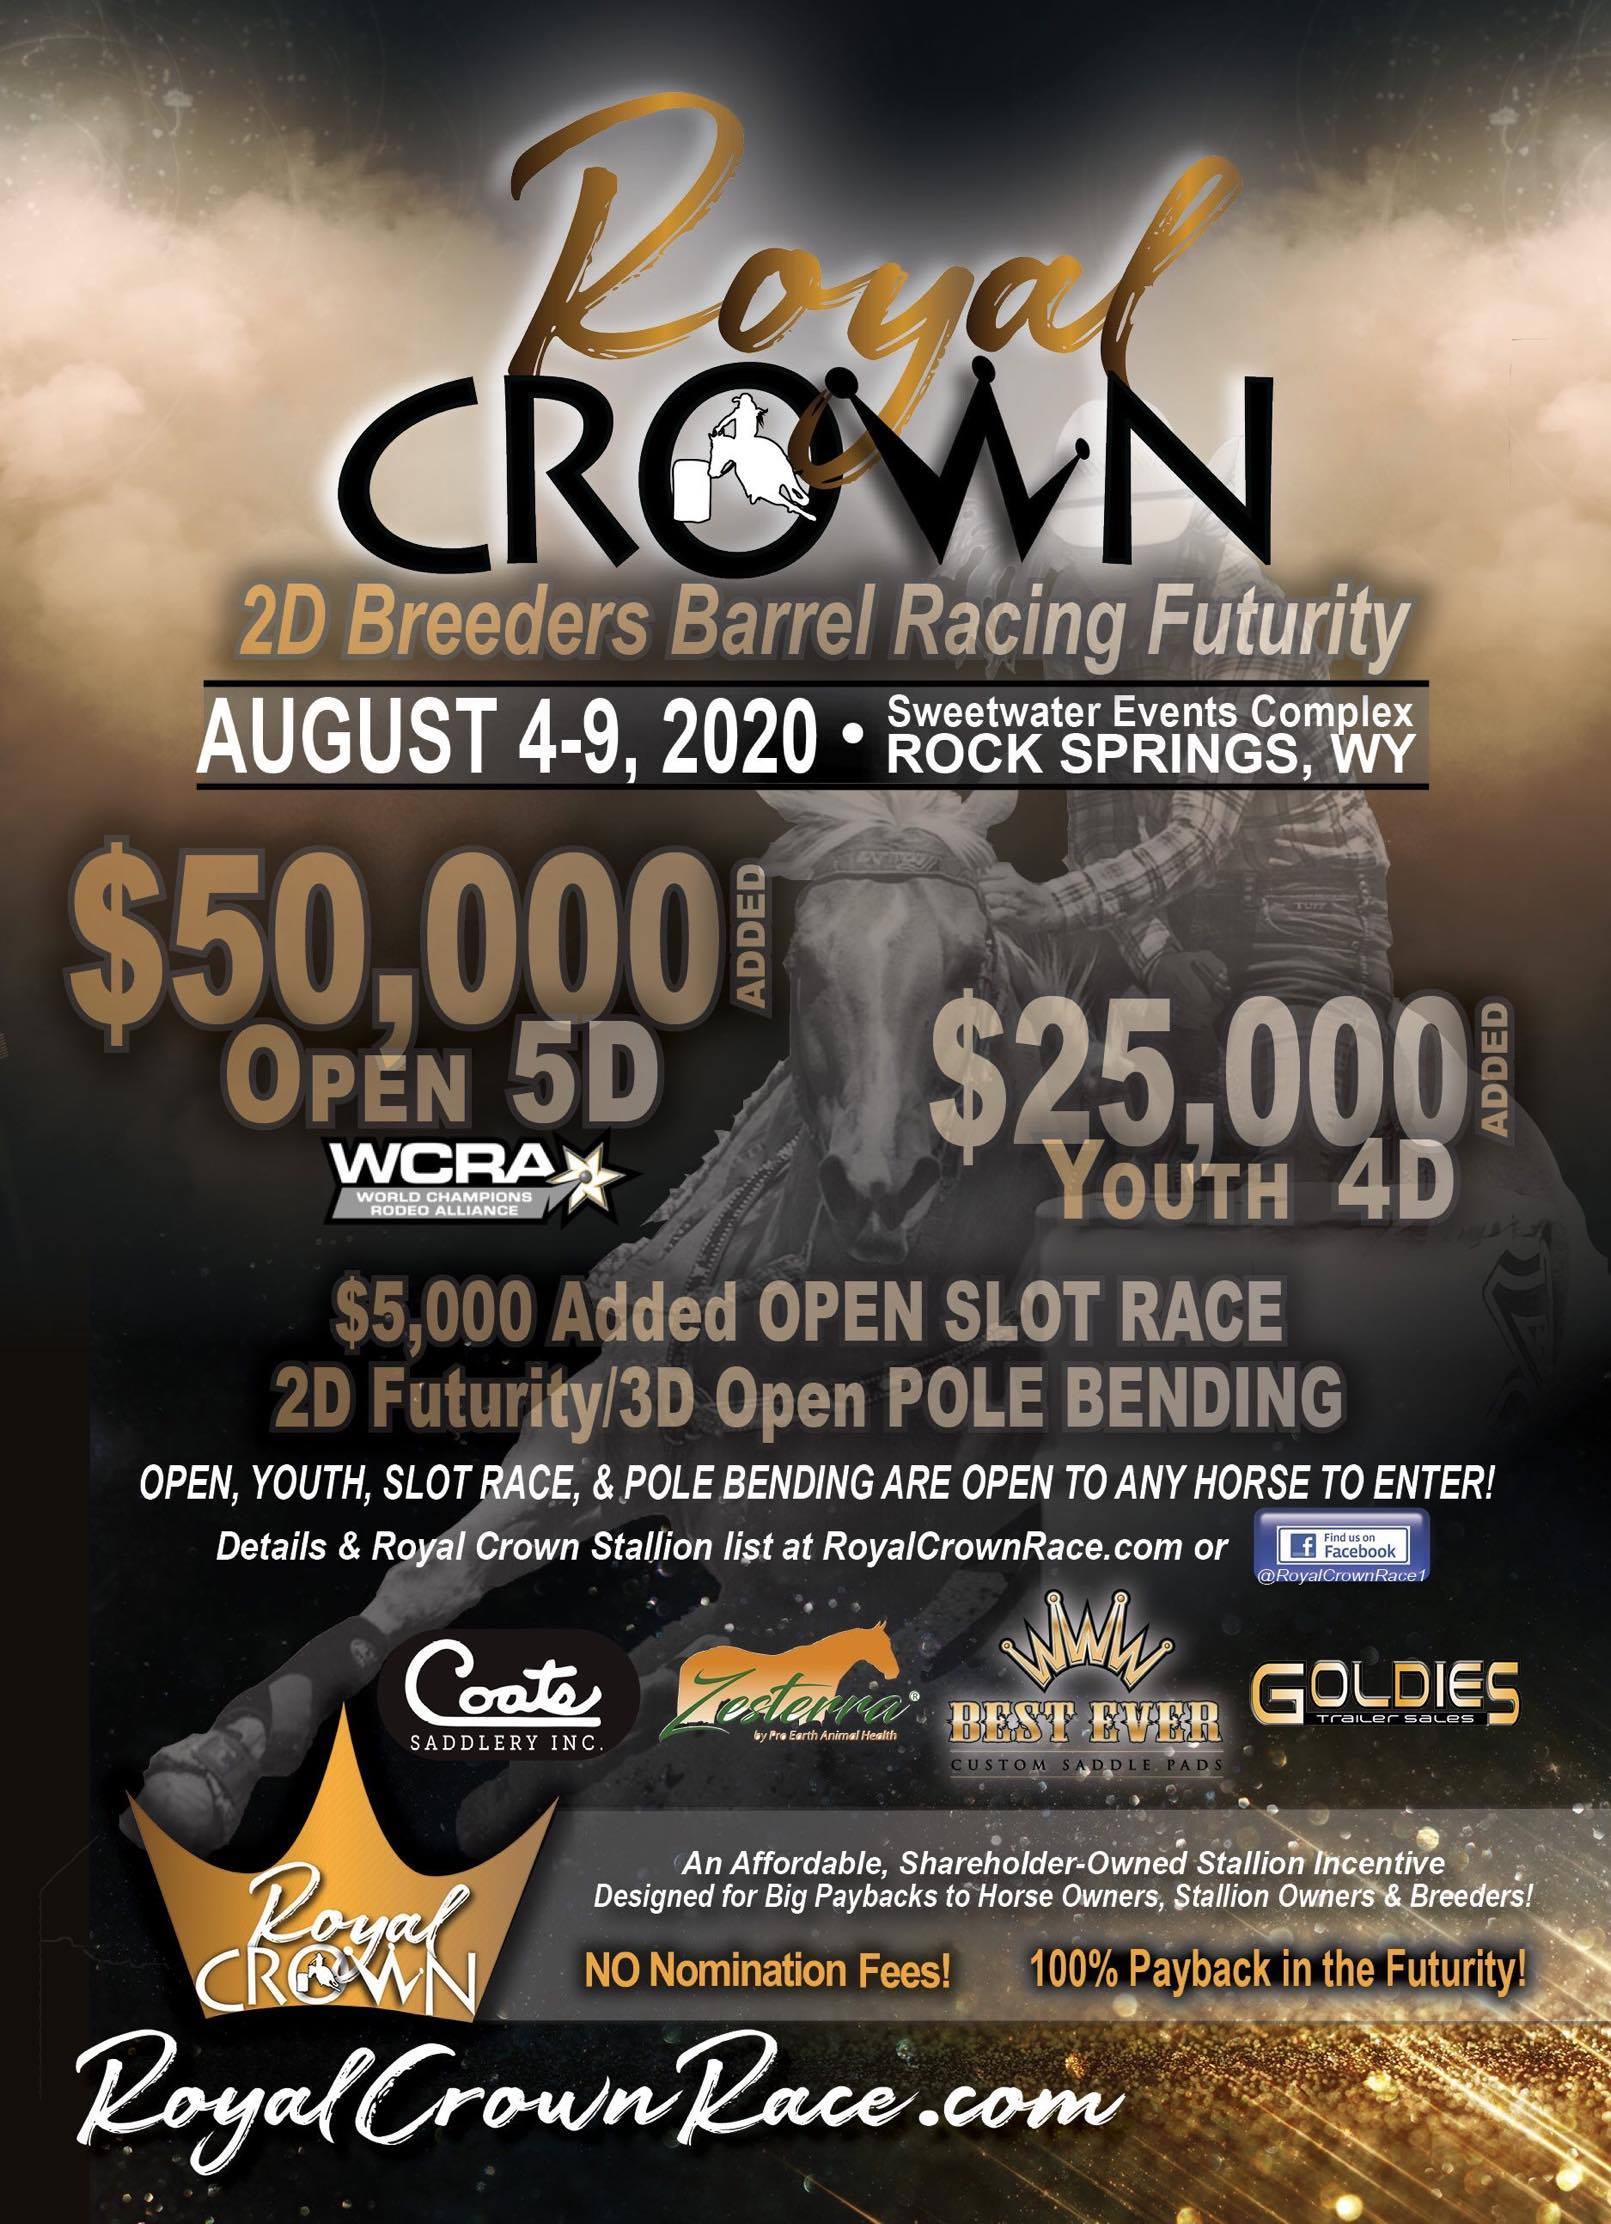 2021 Royal Crown Race will be 8/10-8/15/21